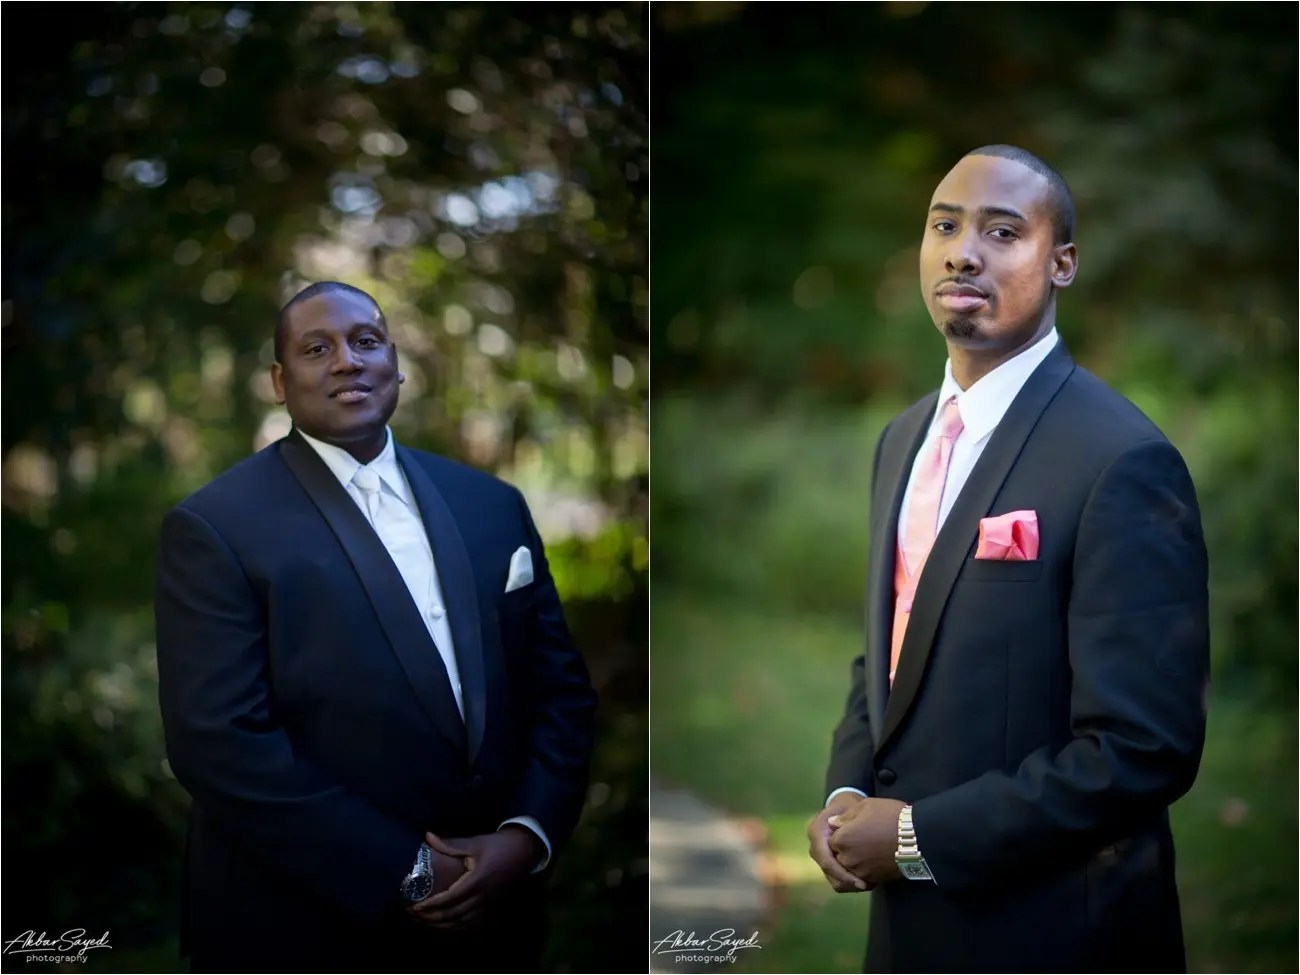 Avon and Tracie - Grey Rock Mansion Wedding 27